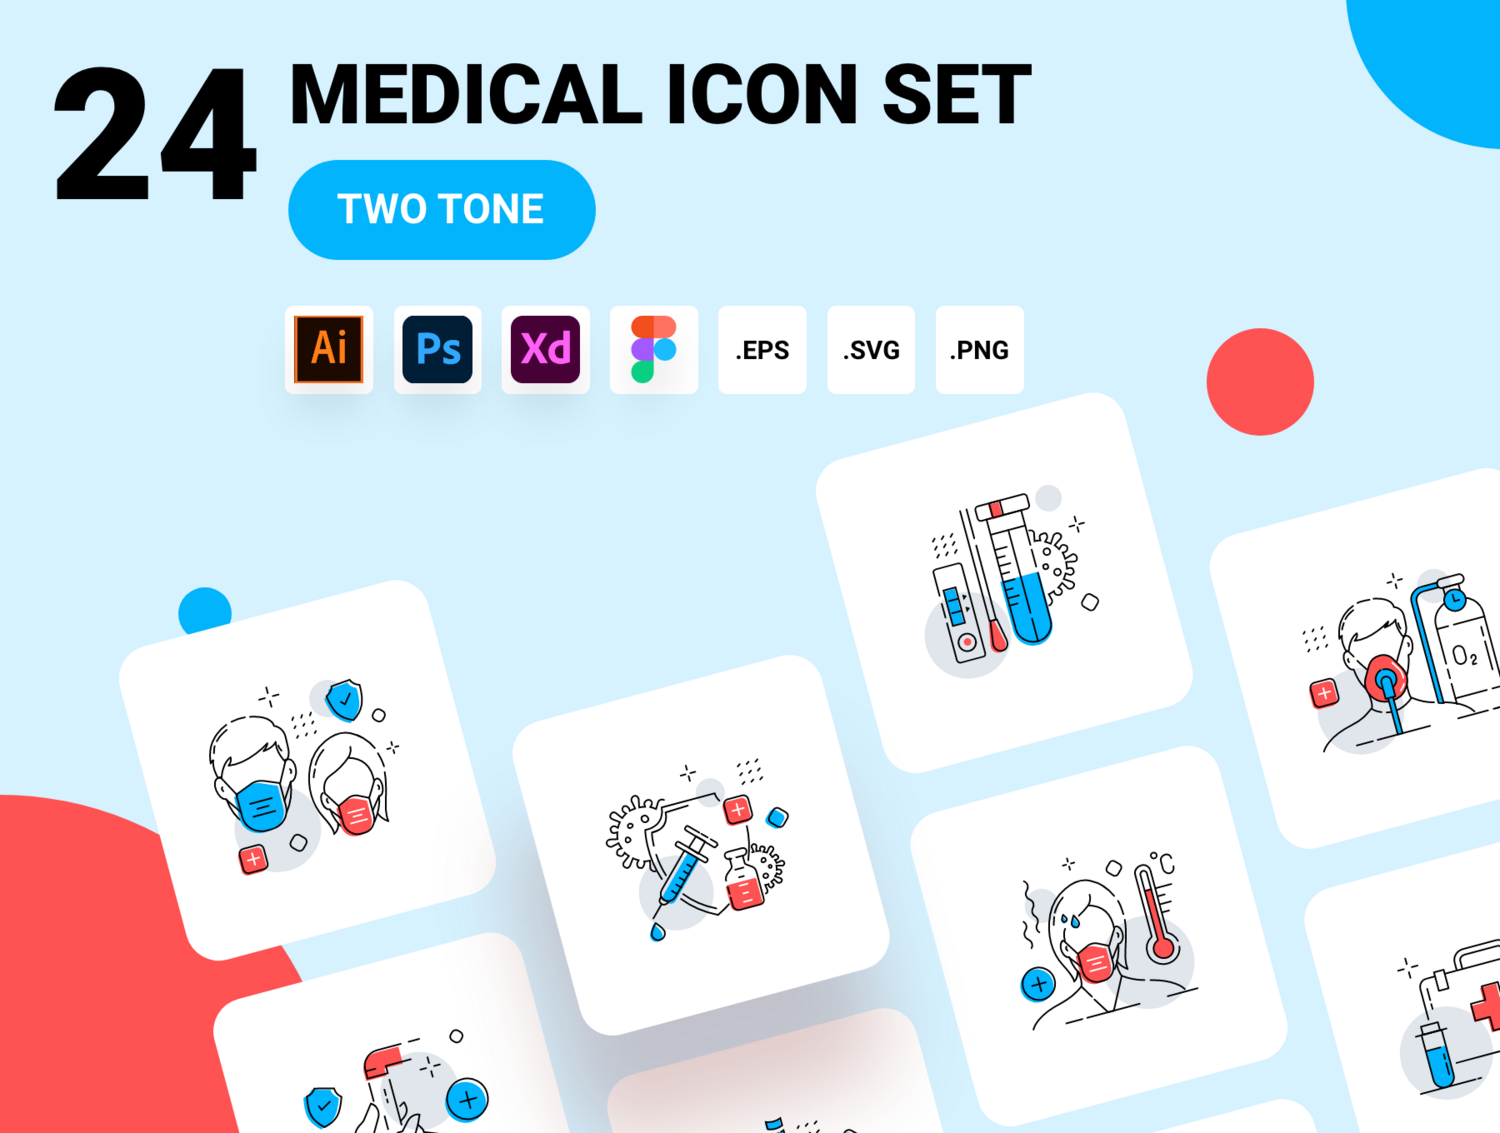 Covid and Medical icon pack